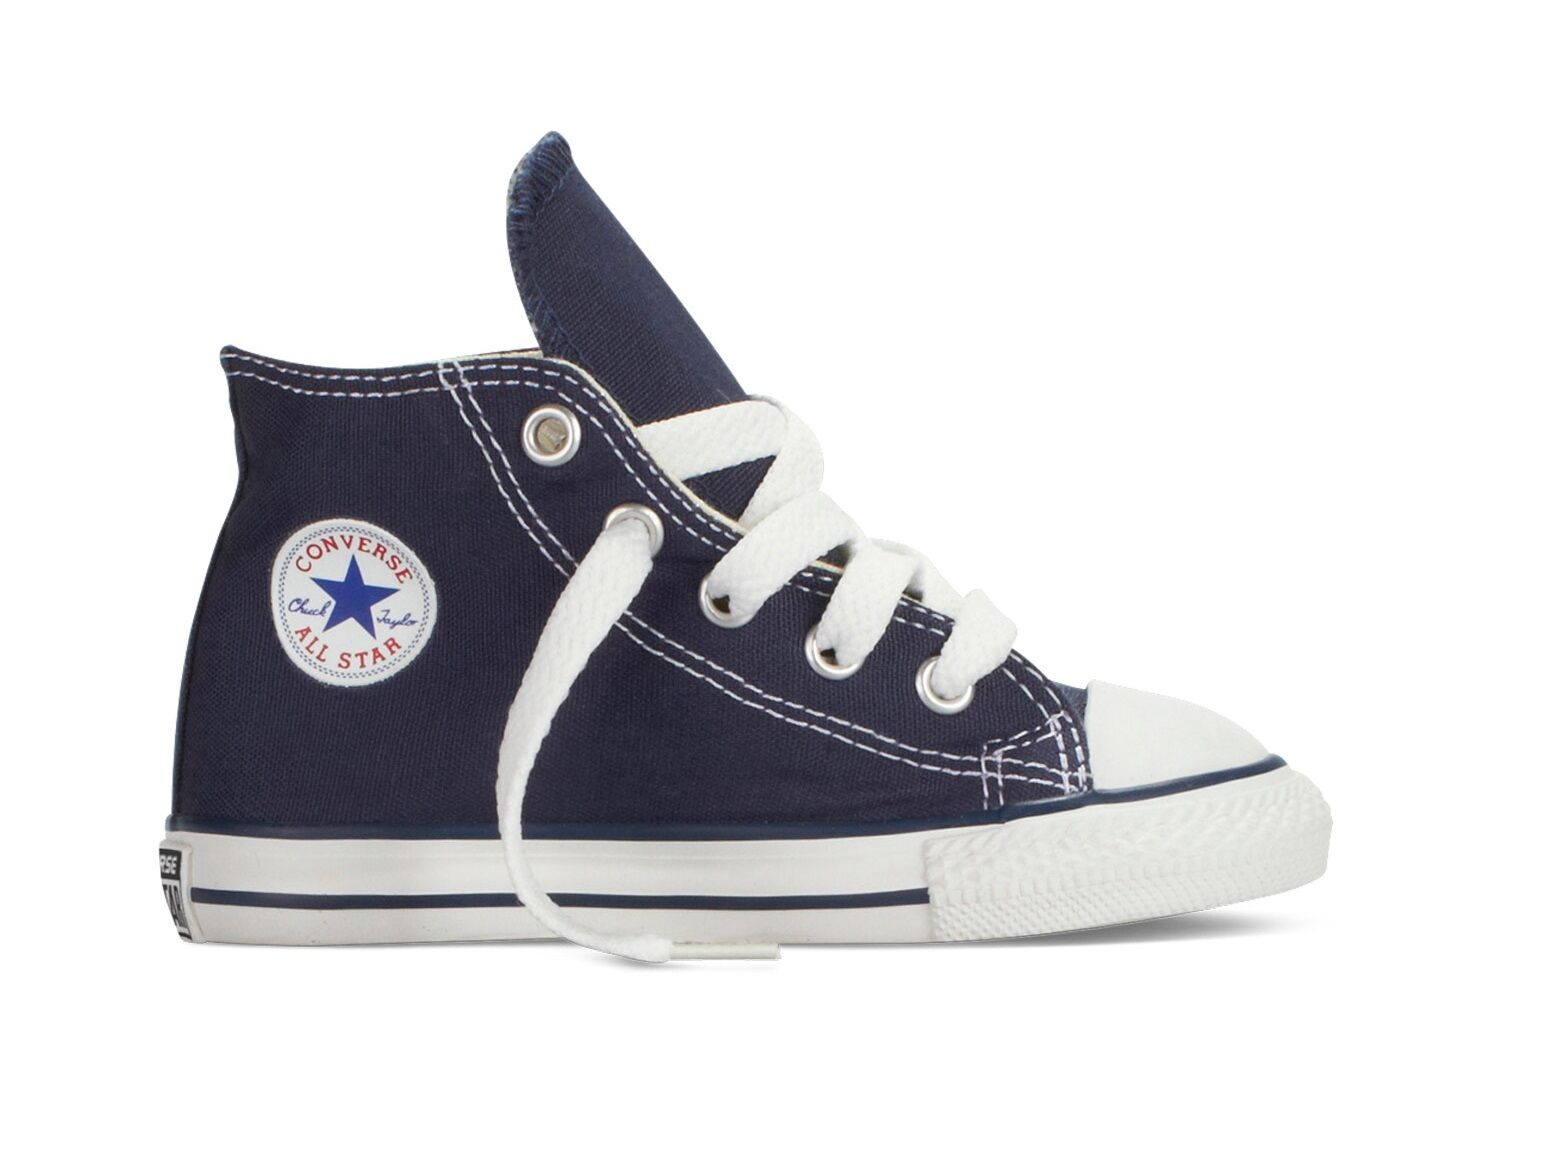 b1c6a0afb14e29 Converse Chuck Taylor All Star Infant Dark Navy Textile Trainers 8 ...